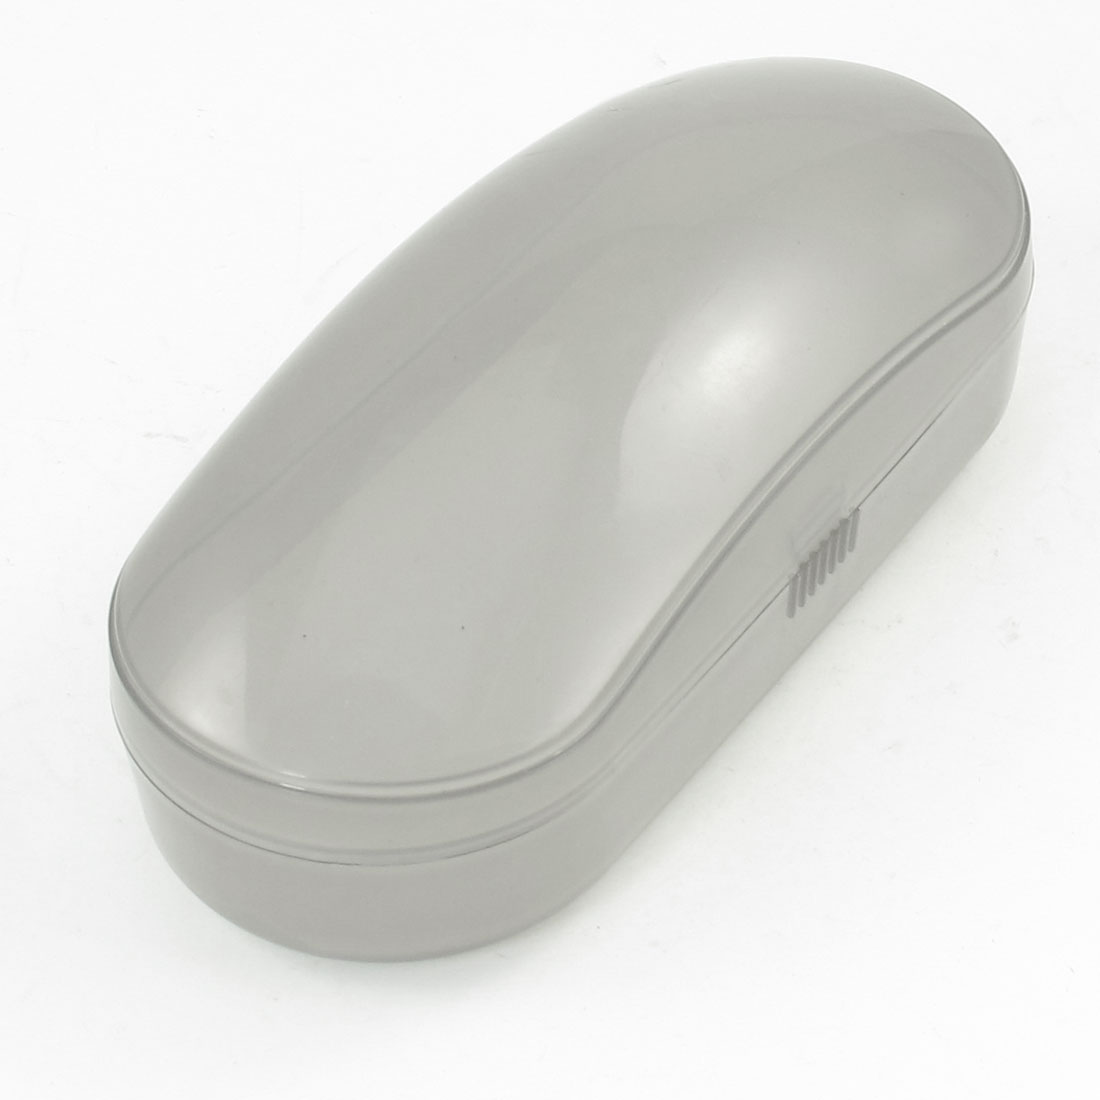 "6.3"" Length Oval Shell Clear Gray Sunglasses Eyeglasses Case Holder"